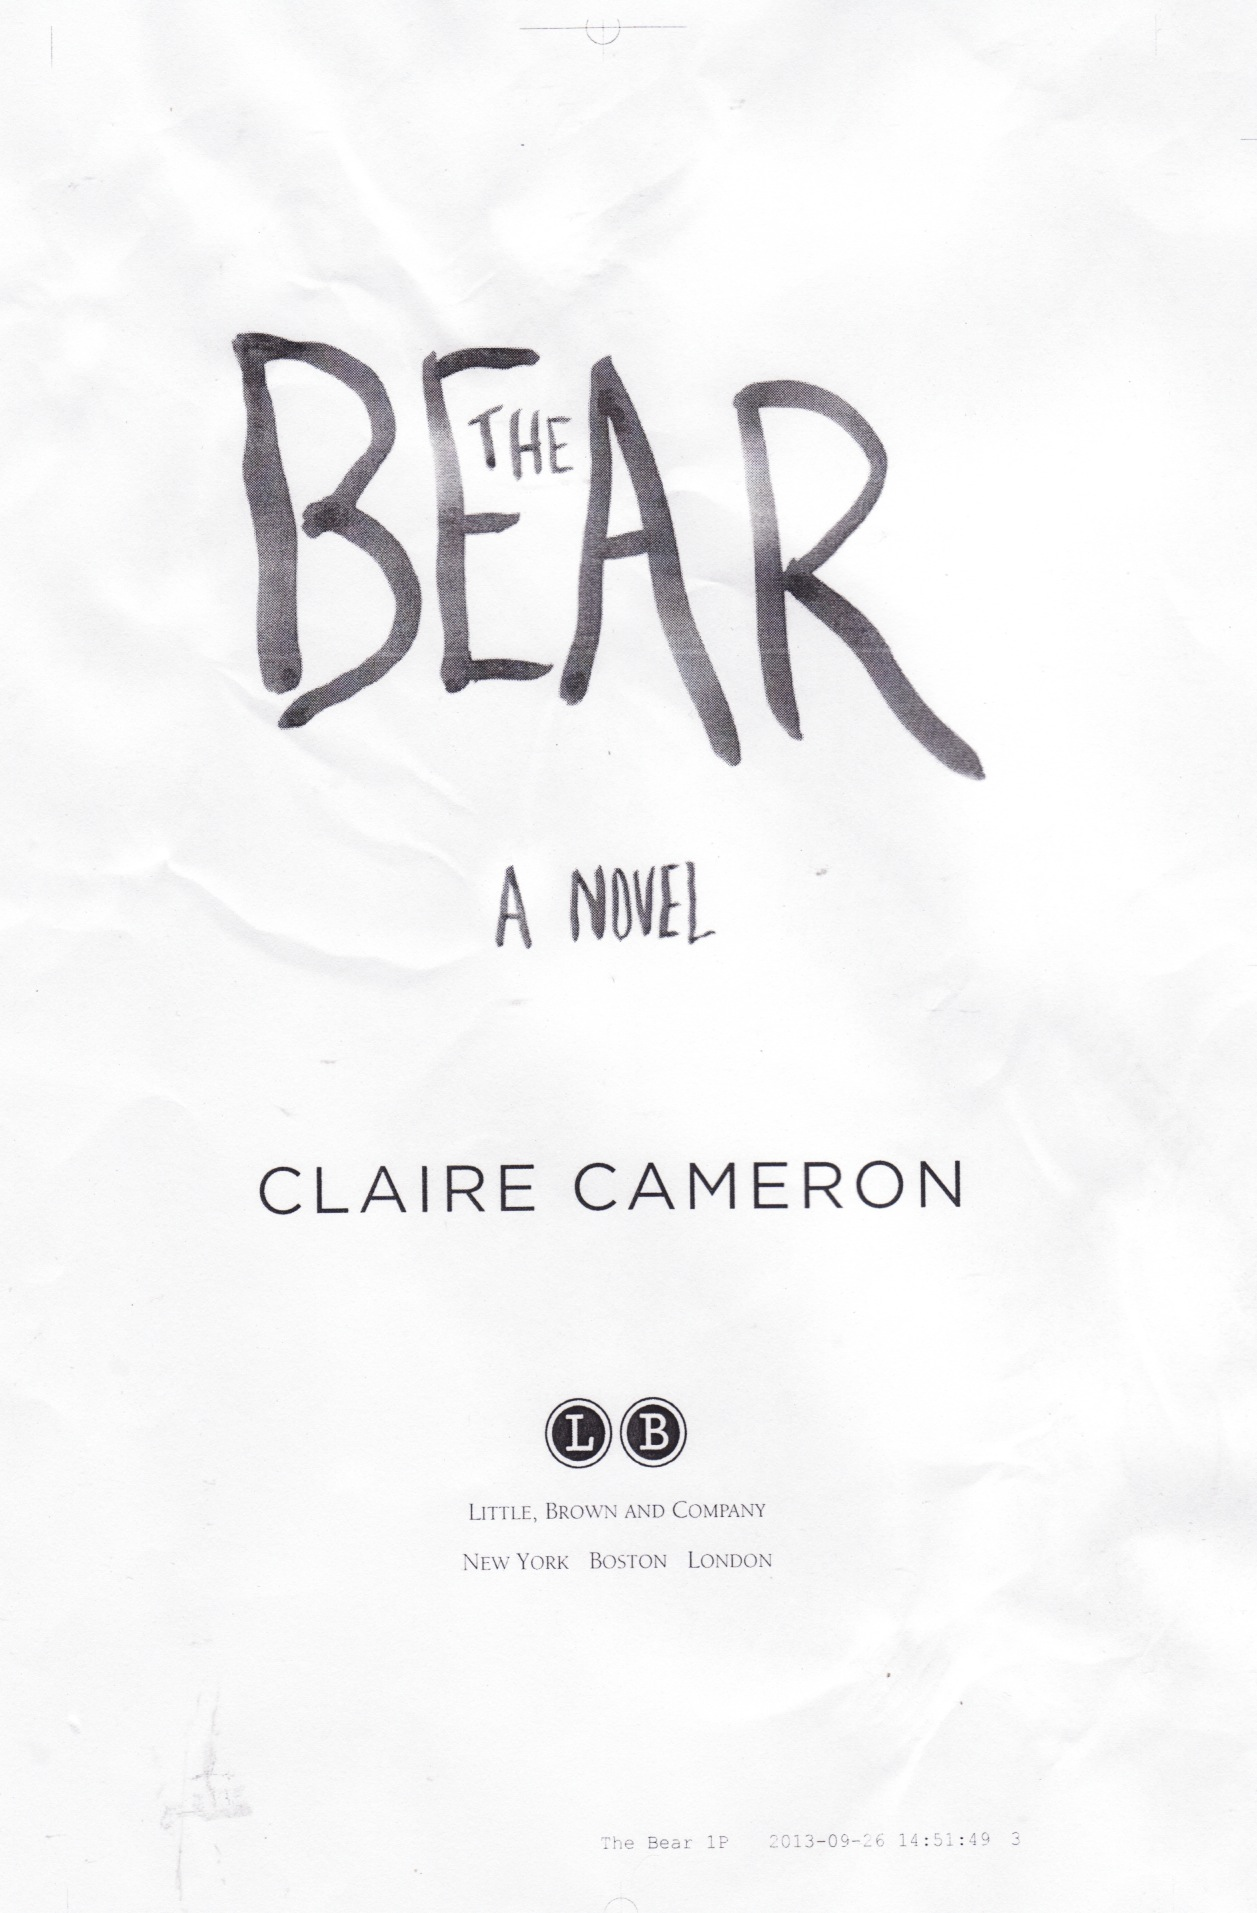 the-bear-page-cameron-proofs